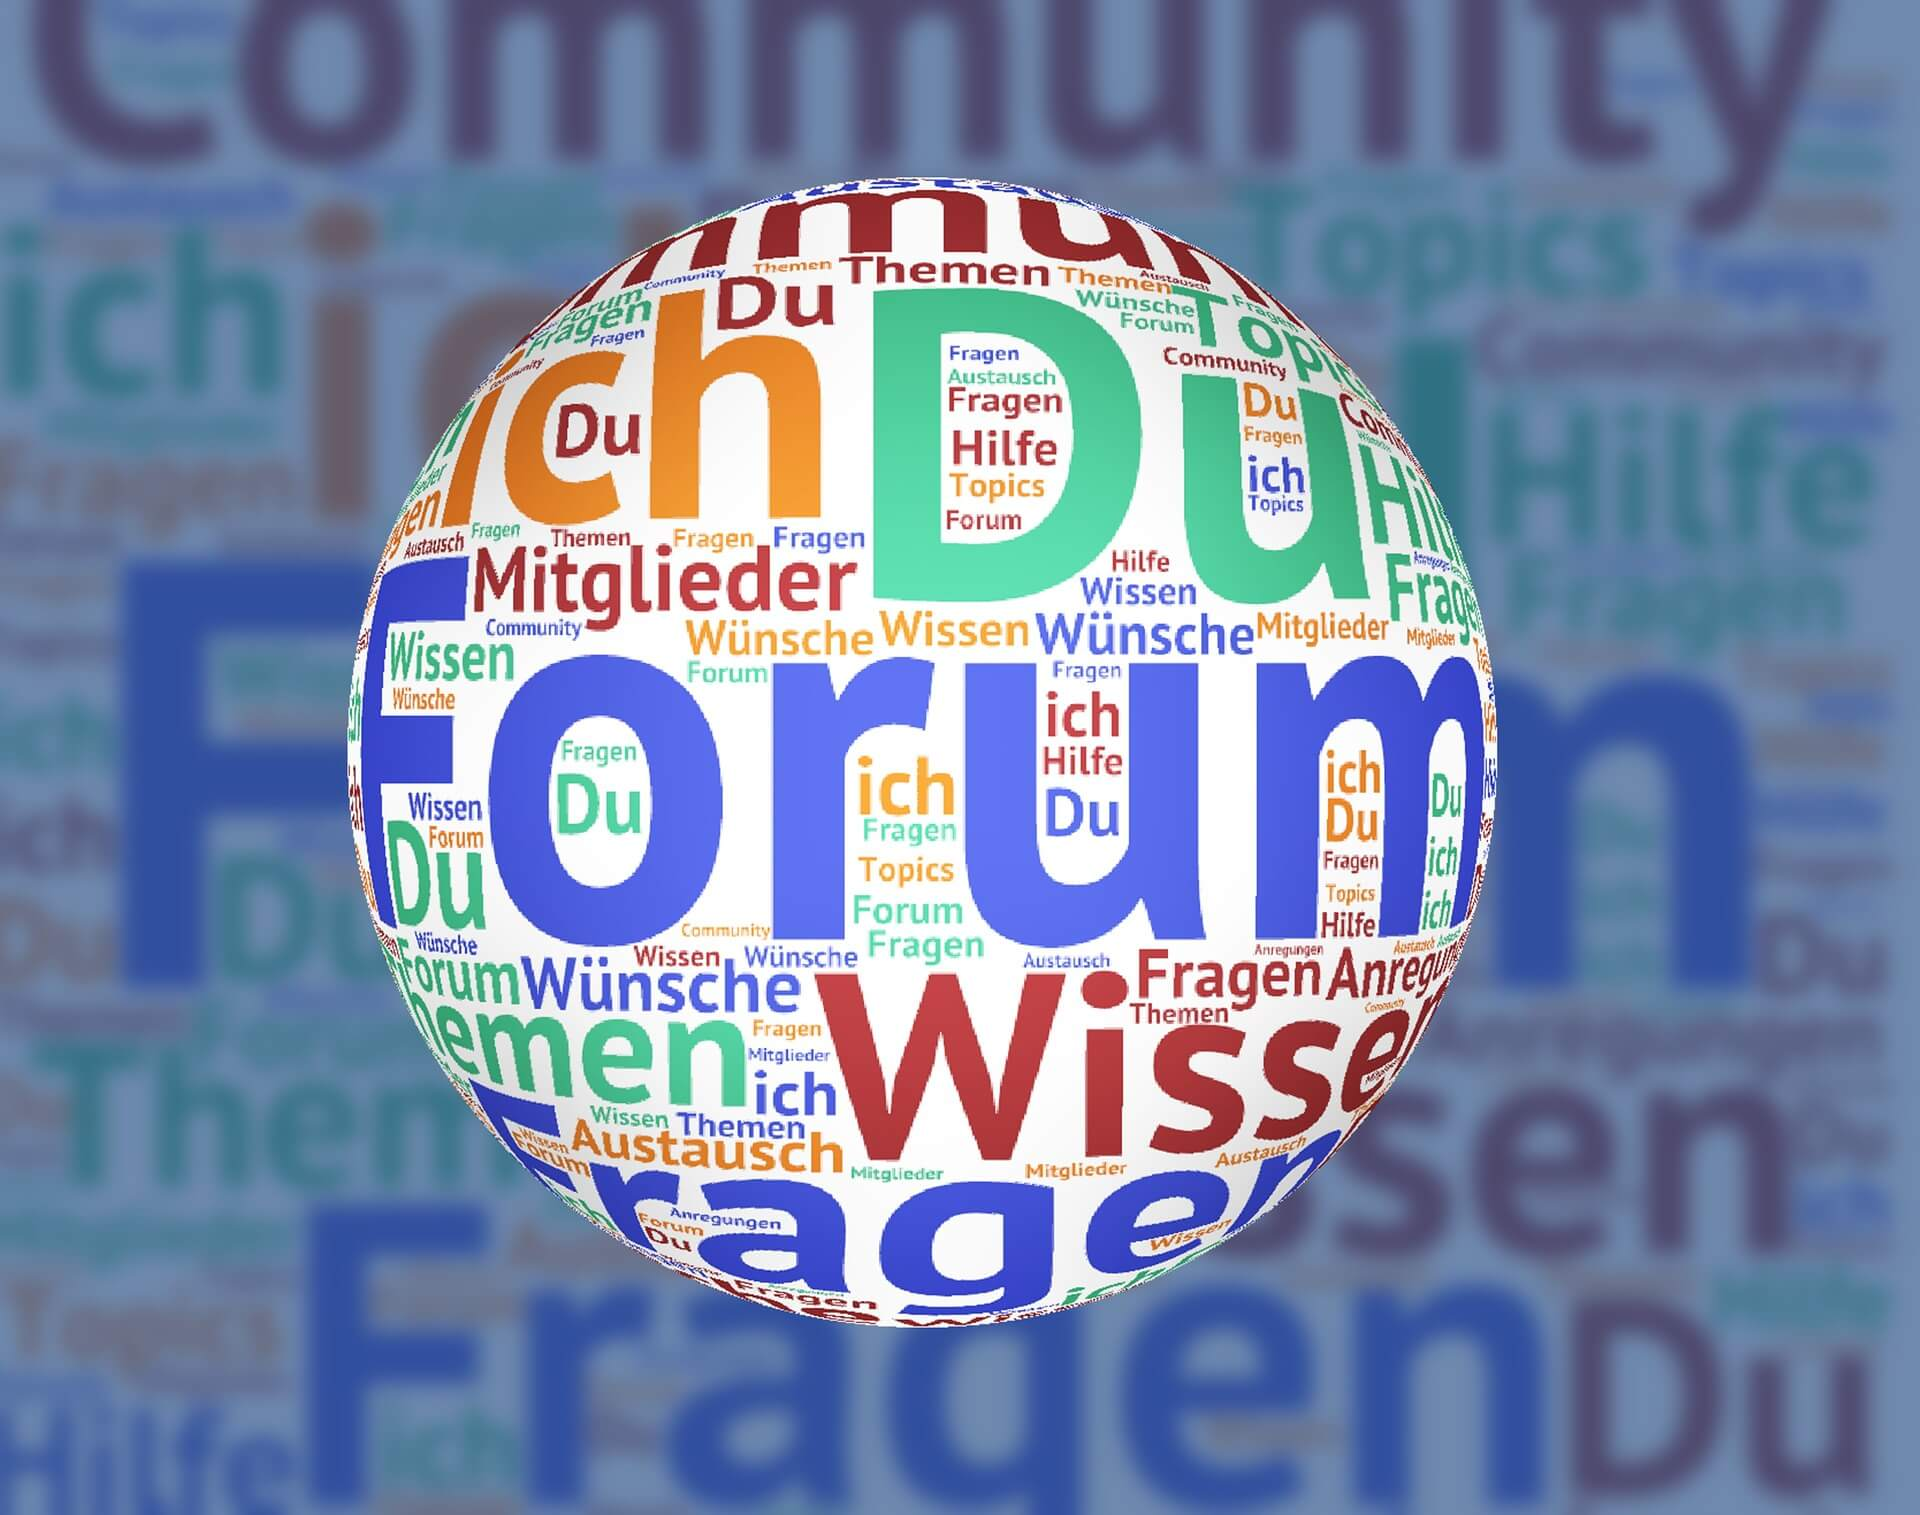 Website forum